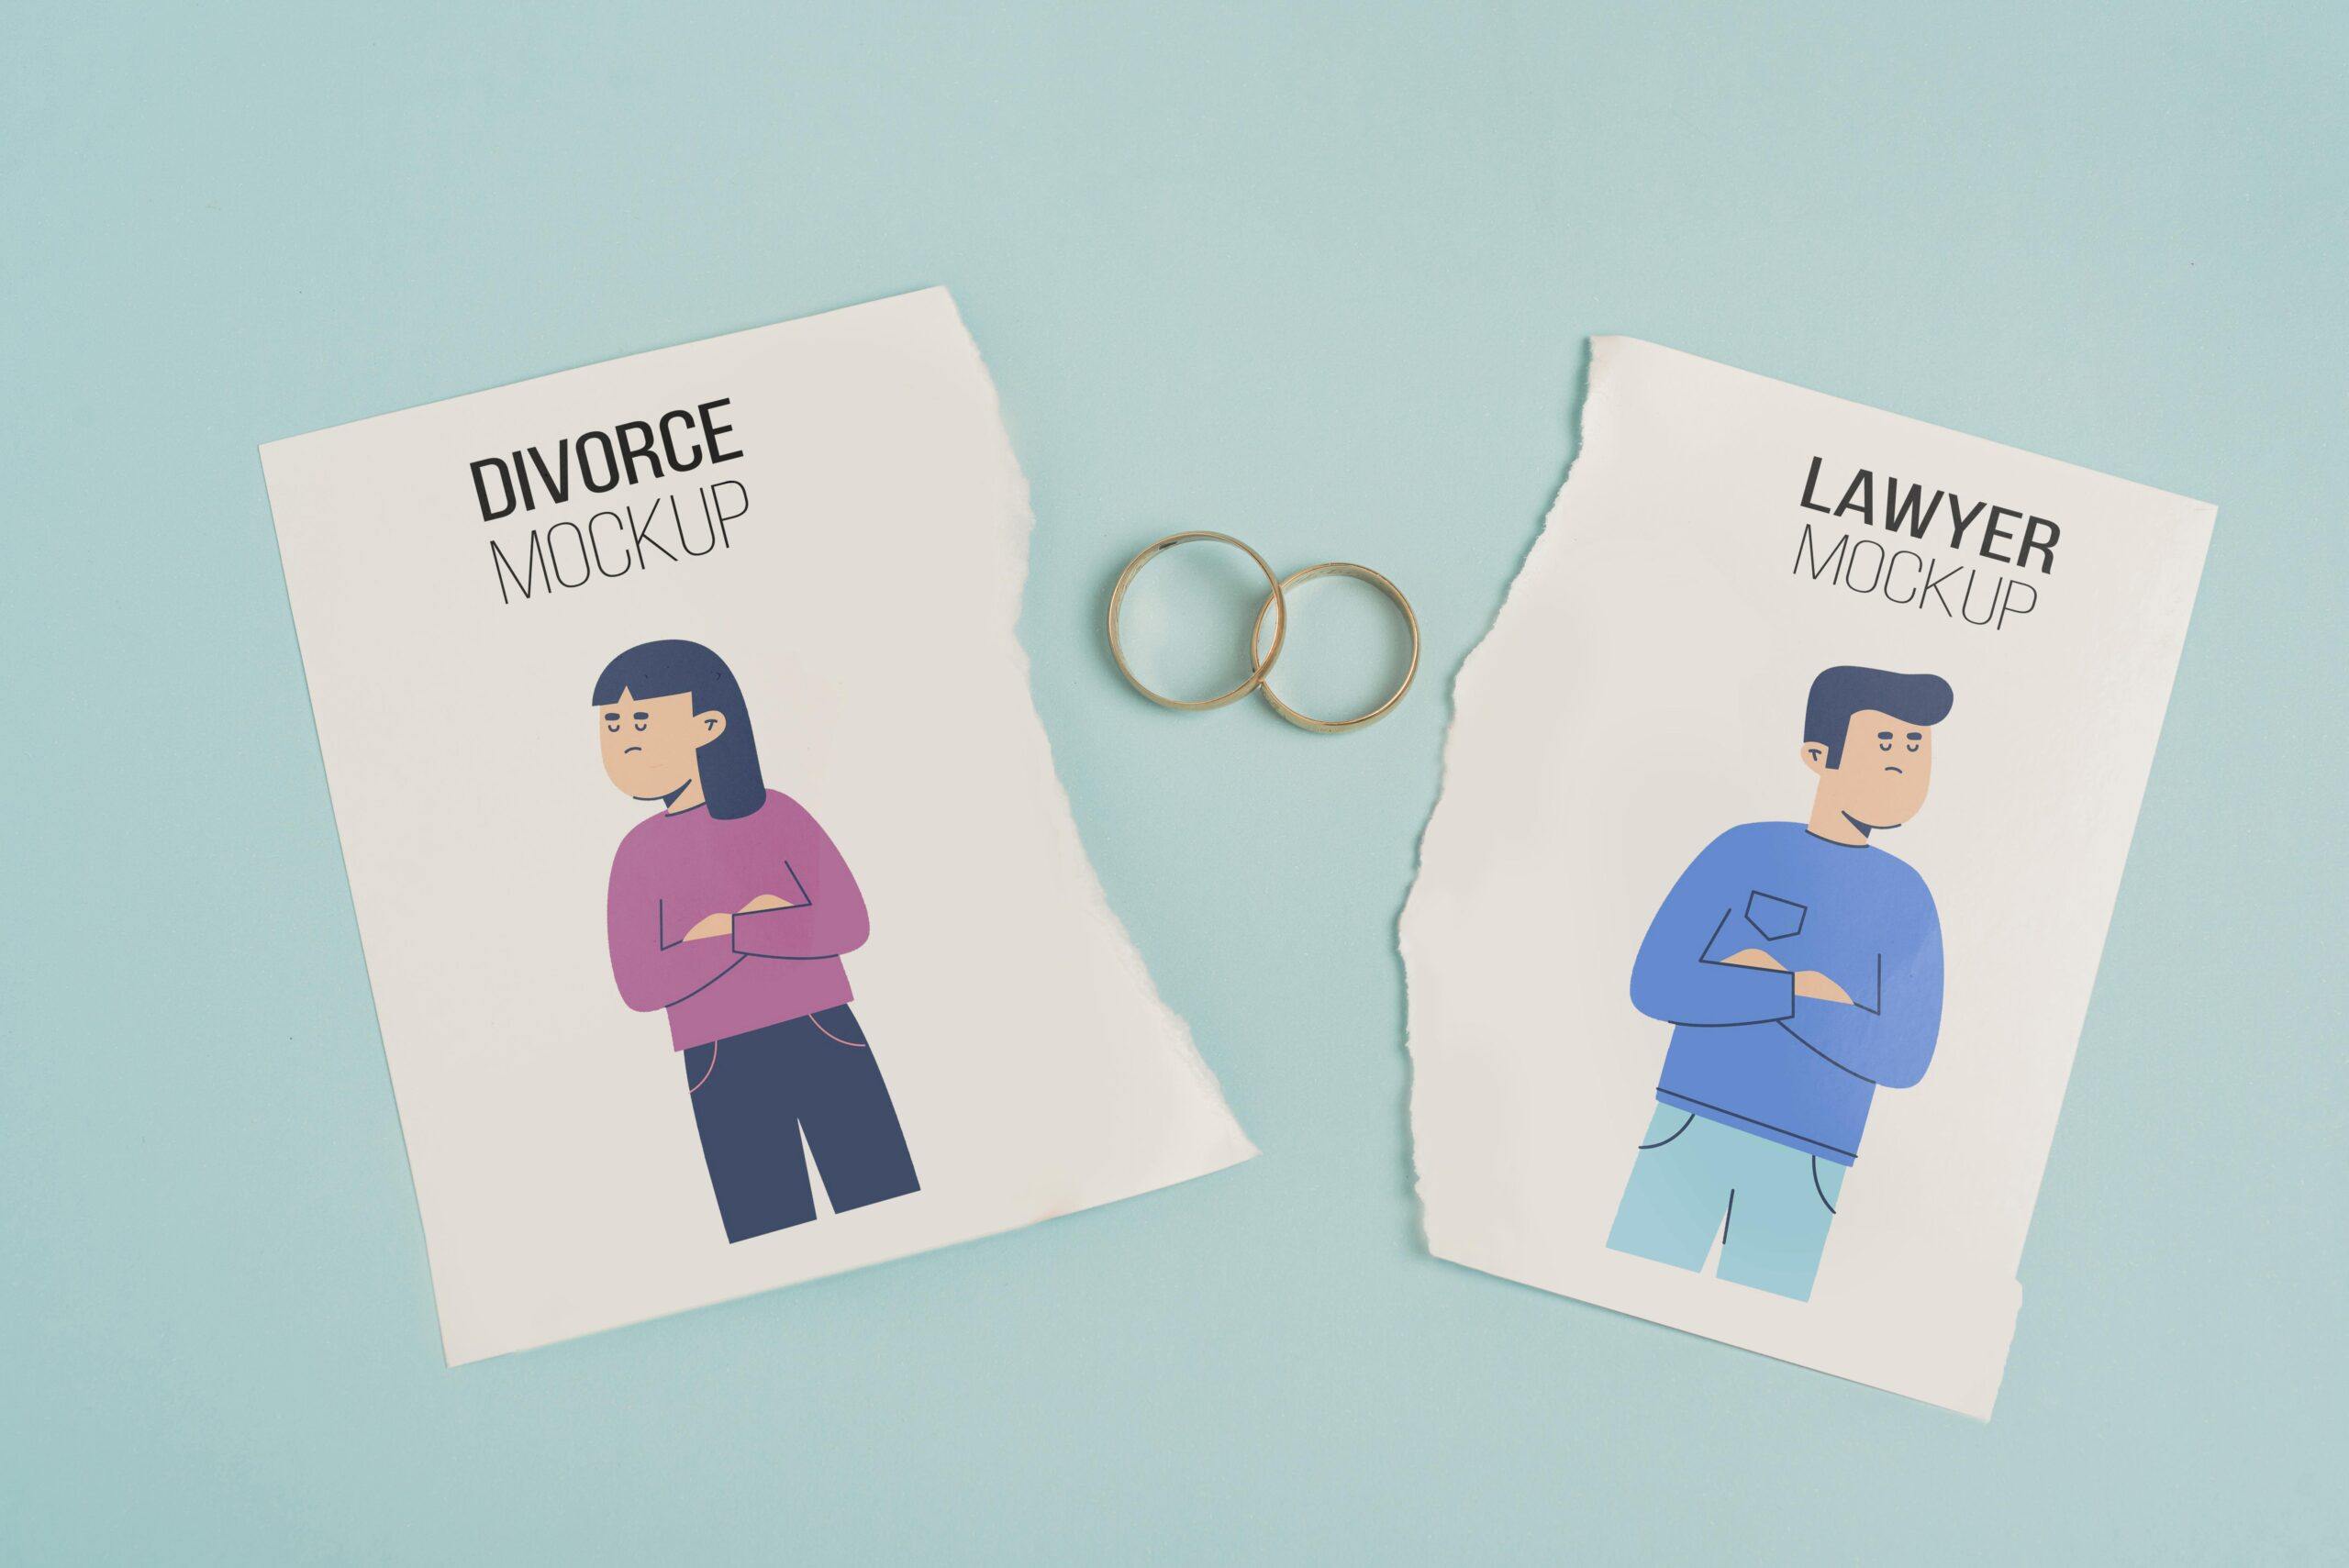 HOW MARRIAGE IS DISSOLVED IN UKRAINE